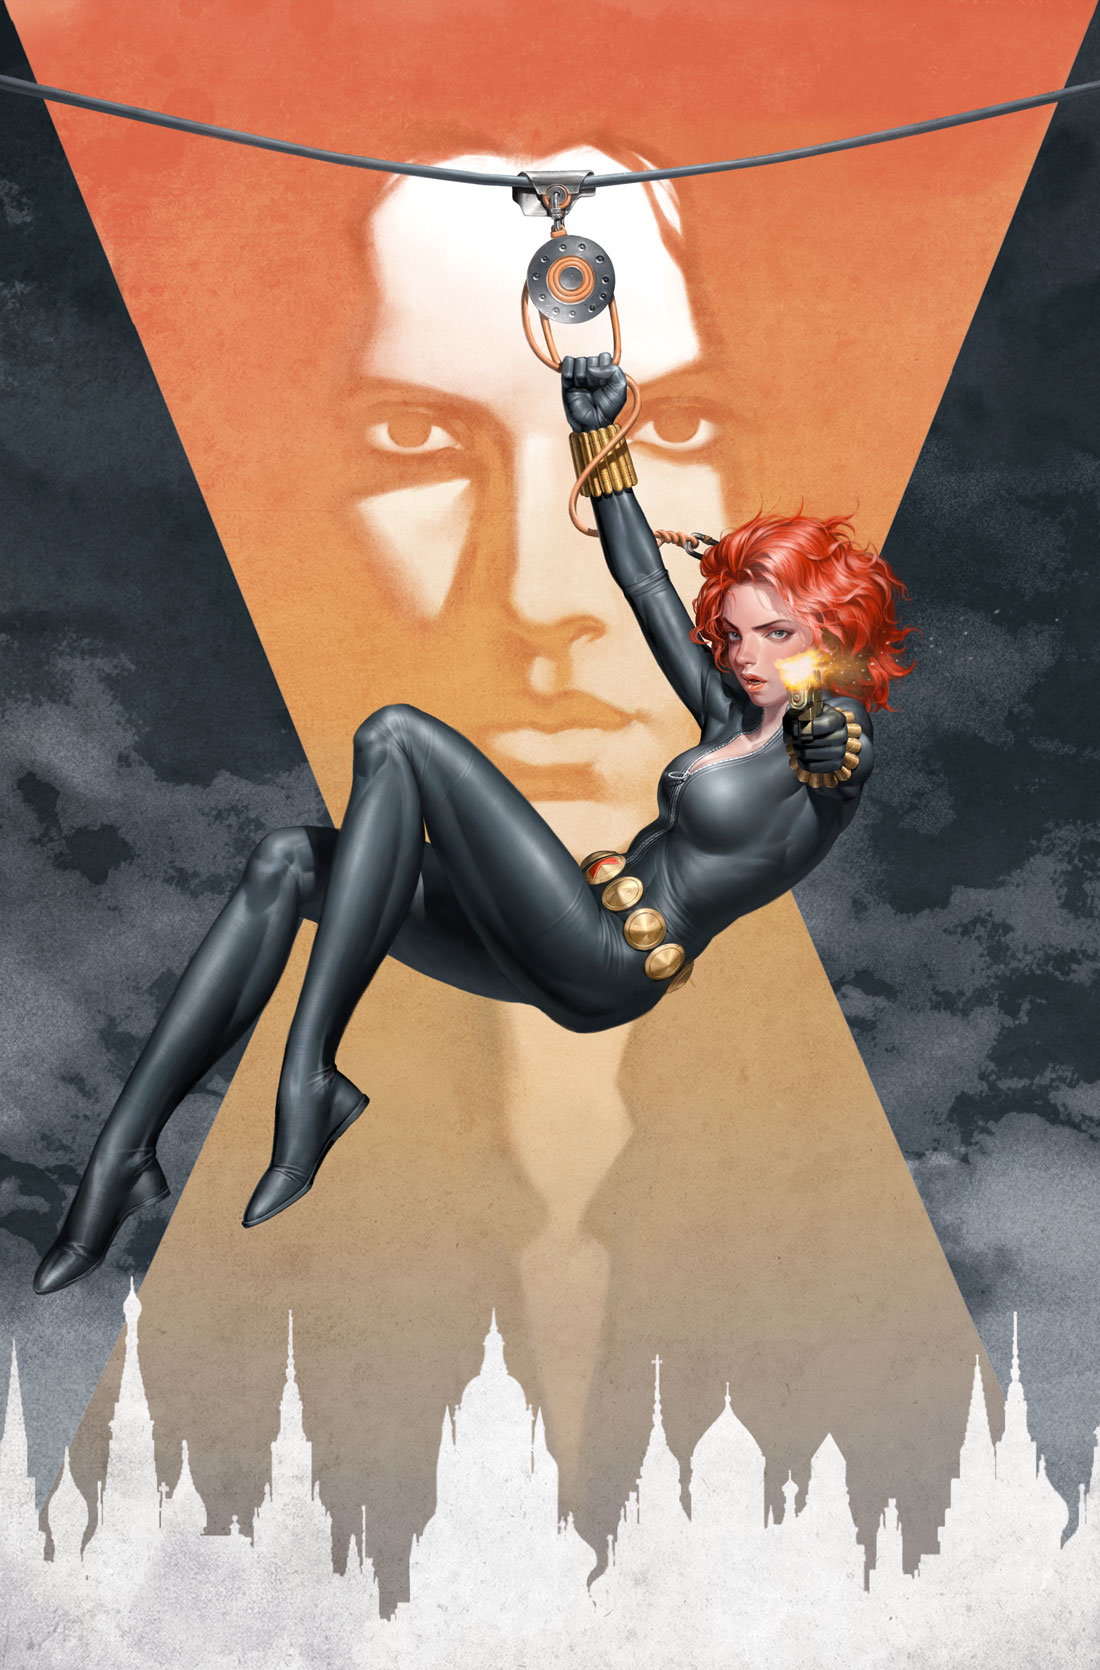 WEB OF BLACK WIDOW #1 POSTER